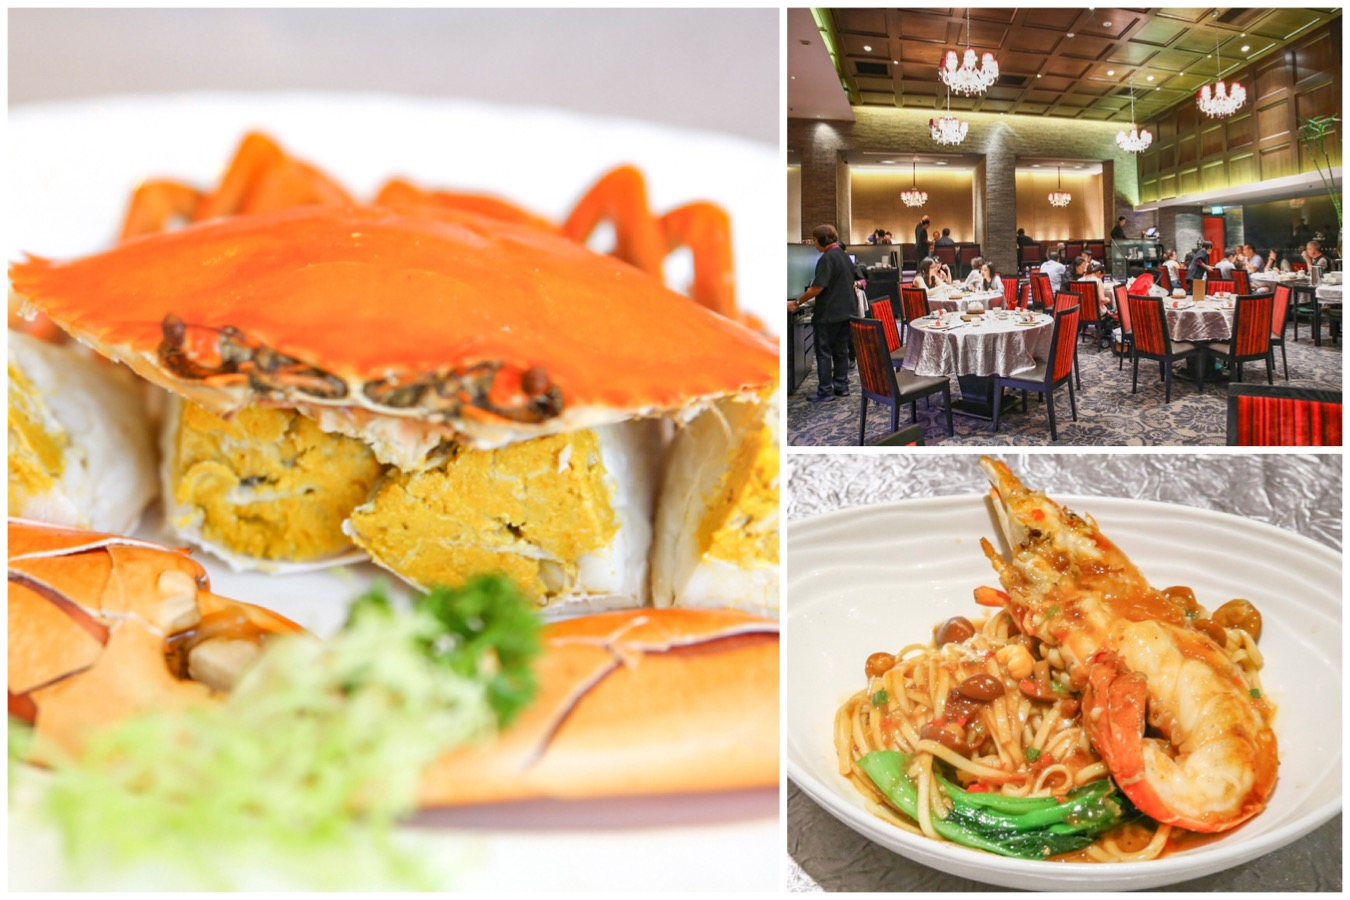 Crystal Jade Golden Palace - Teochew And Cantonese Specialities At Paragon, 1 Michelin Star